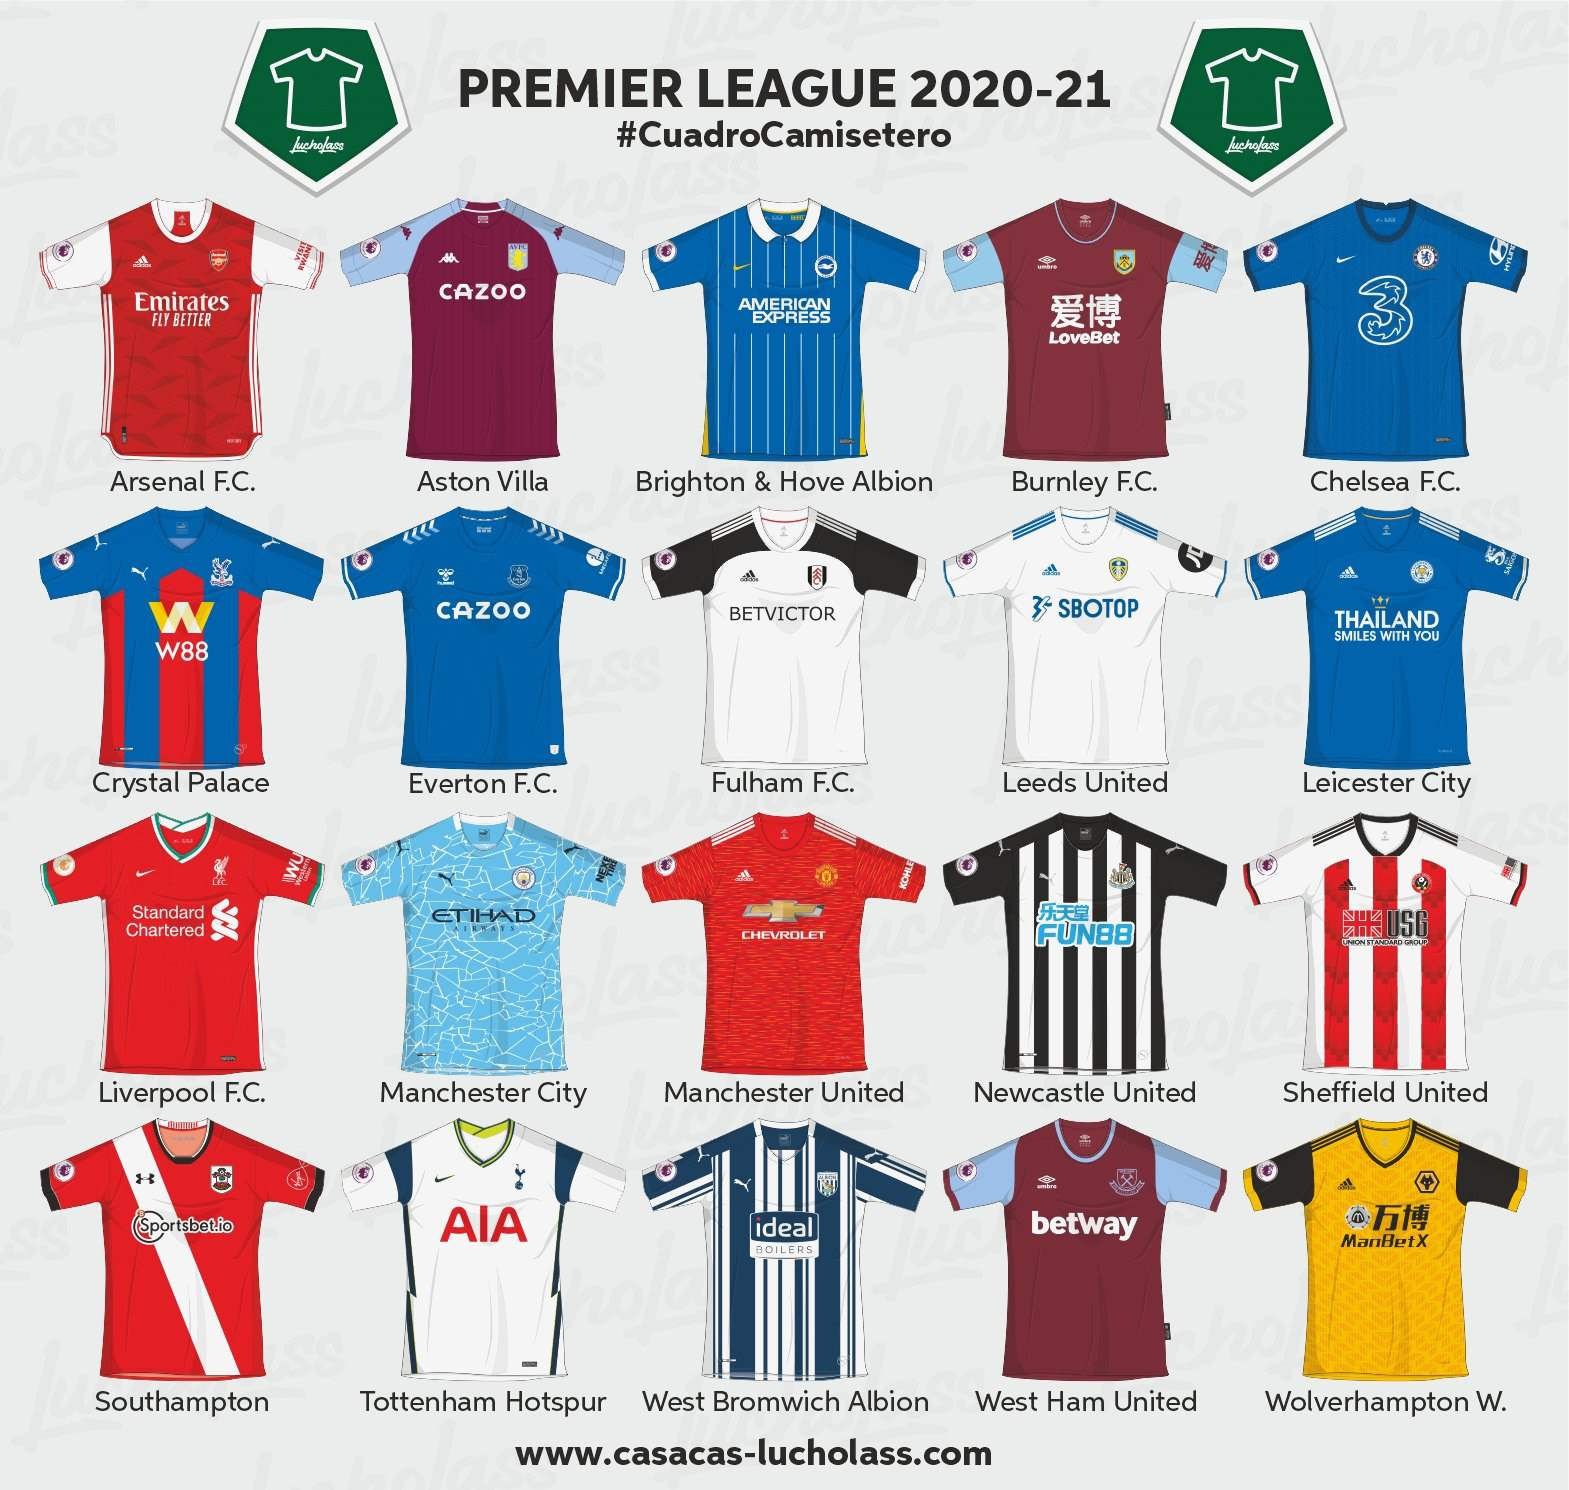 All Premier League 20 21 Kits Home Shirts Complete Just One Away Shirt Missing Footy Headlines